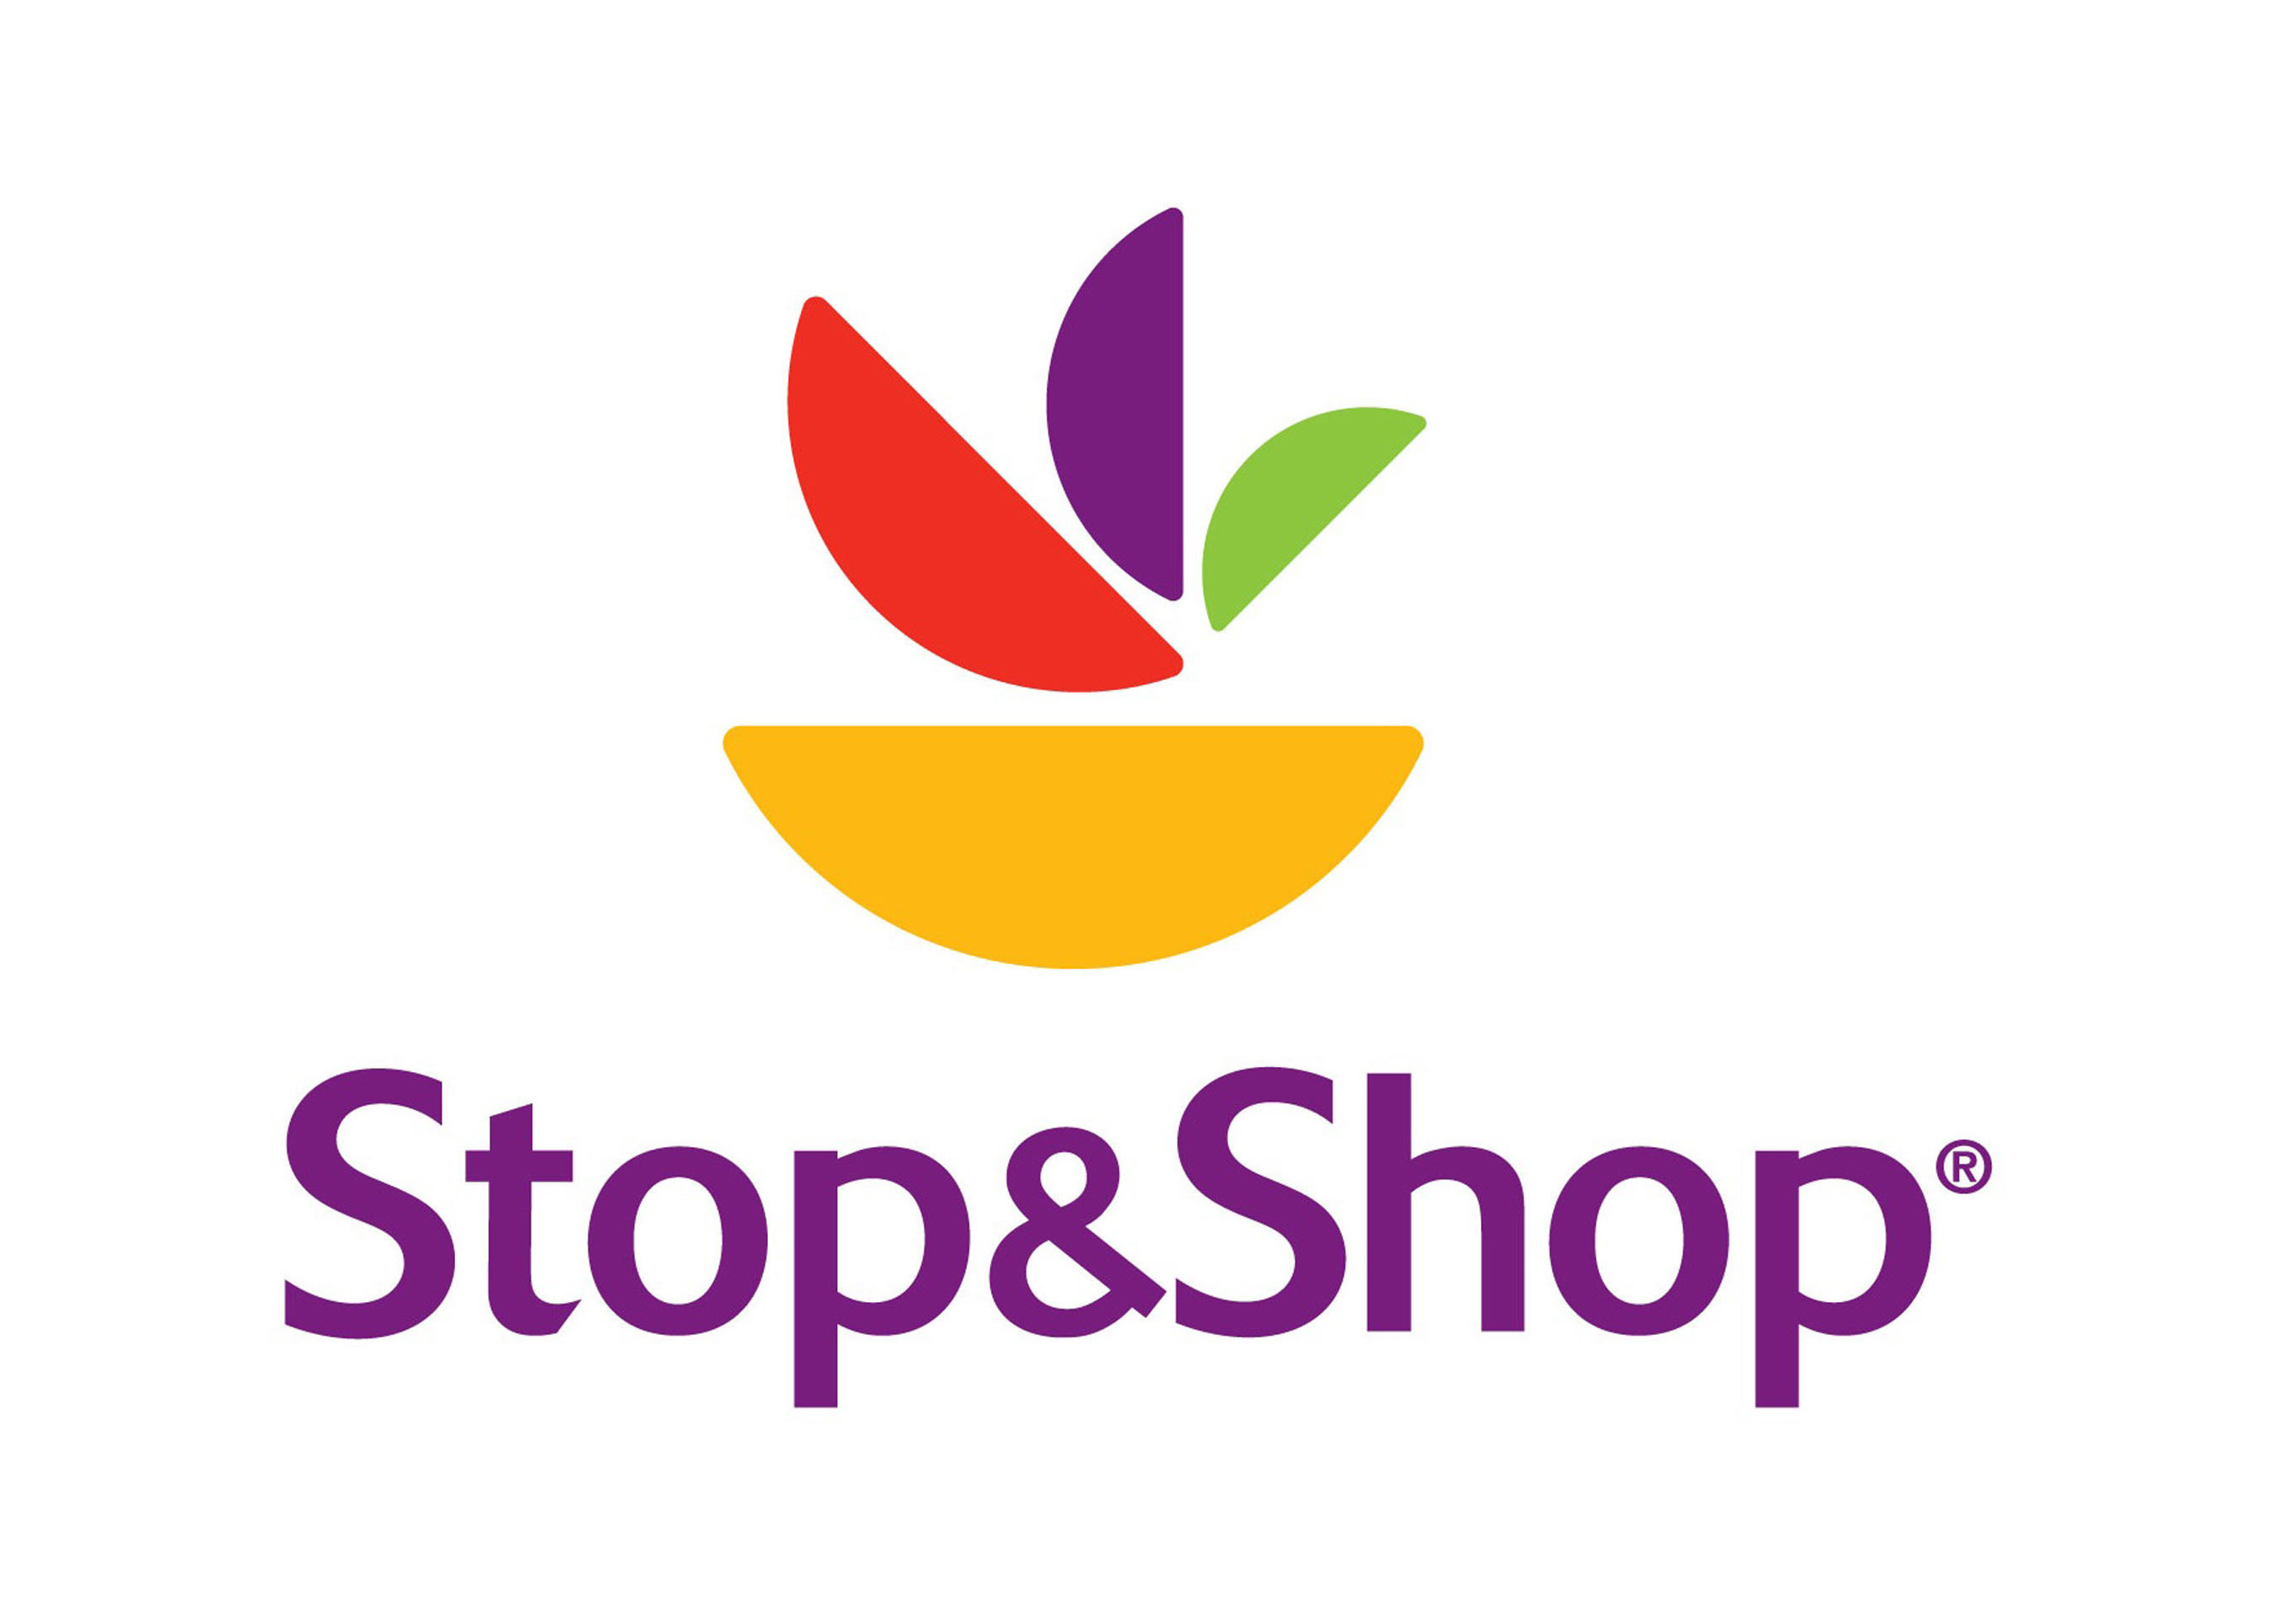 Stop Shop Agrees To Acquire 25 Ap Stores In Greater New York 300115752 as well 95 additionally Search as well Baby Alive Logo yBSpQADyjPYJ5oxjbG5F8hGNL6JHMrsM8jrtyJvAg24 also Agencia De Agencias De M O D E L O S blogspot. on oscar mayer logo clip art